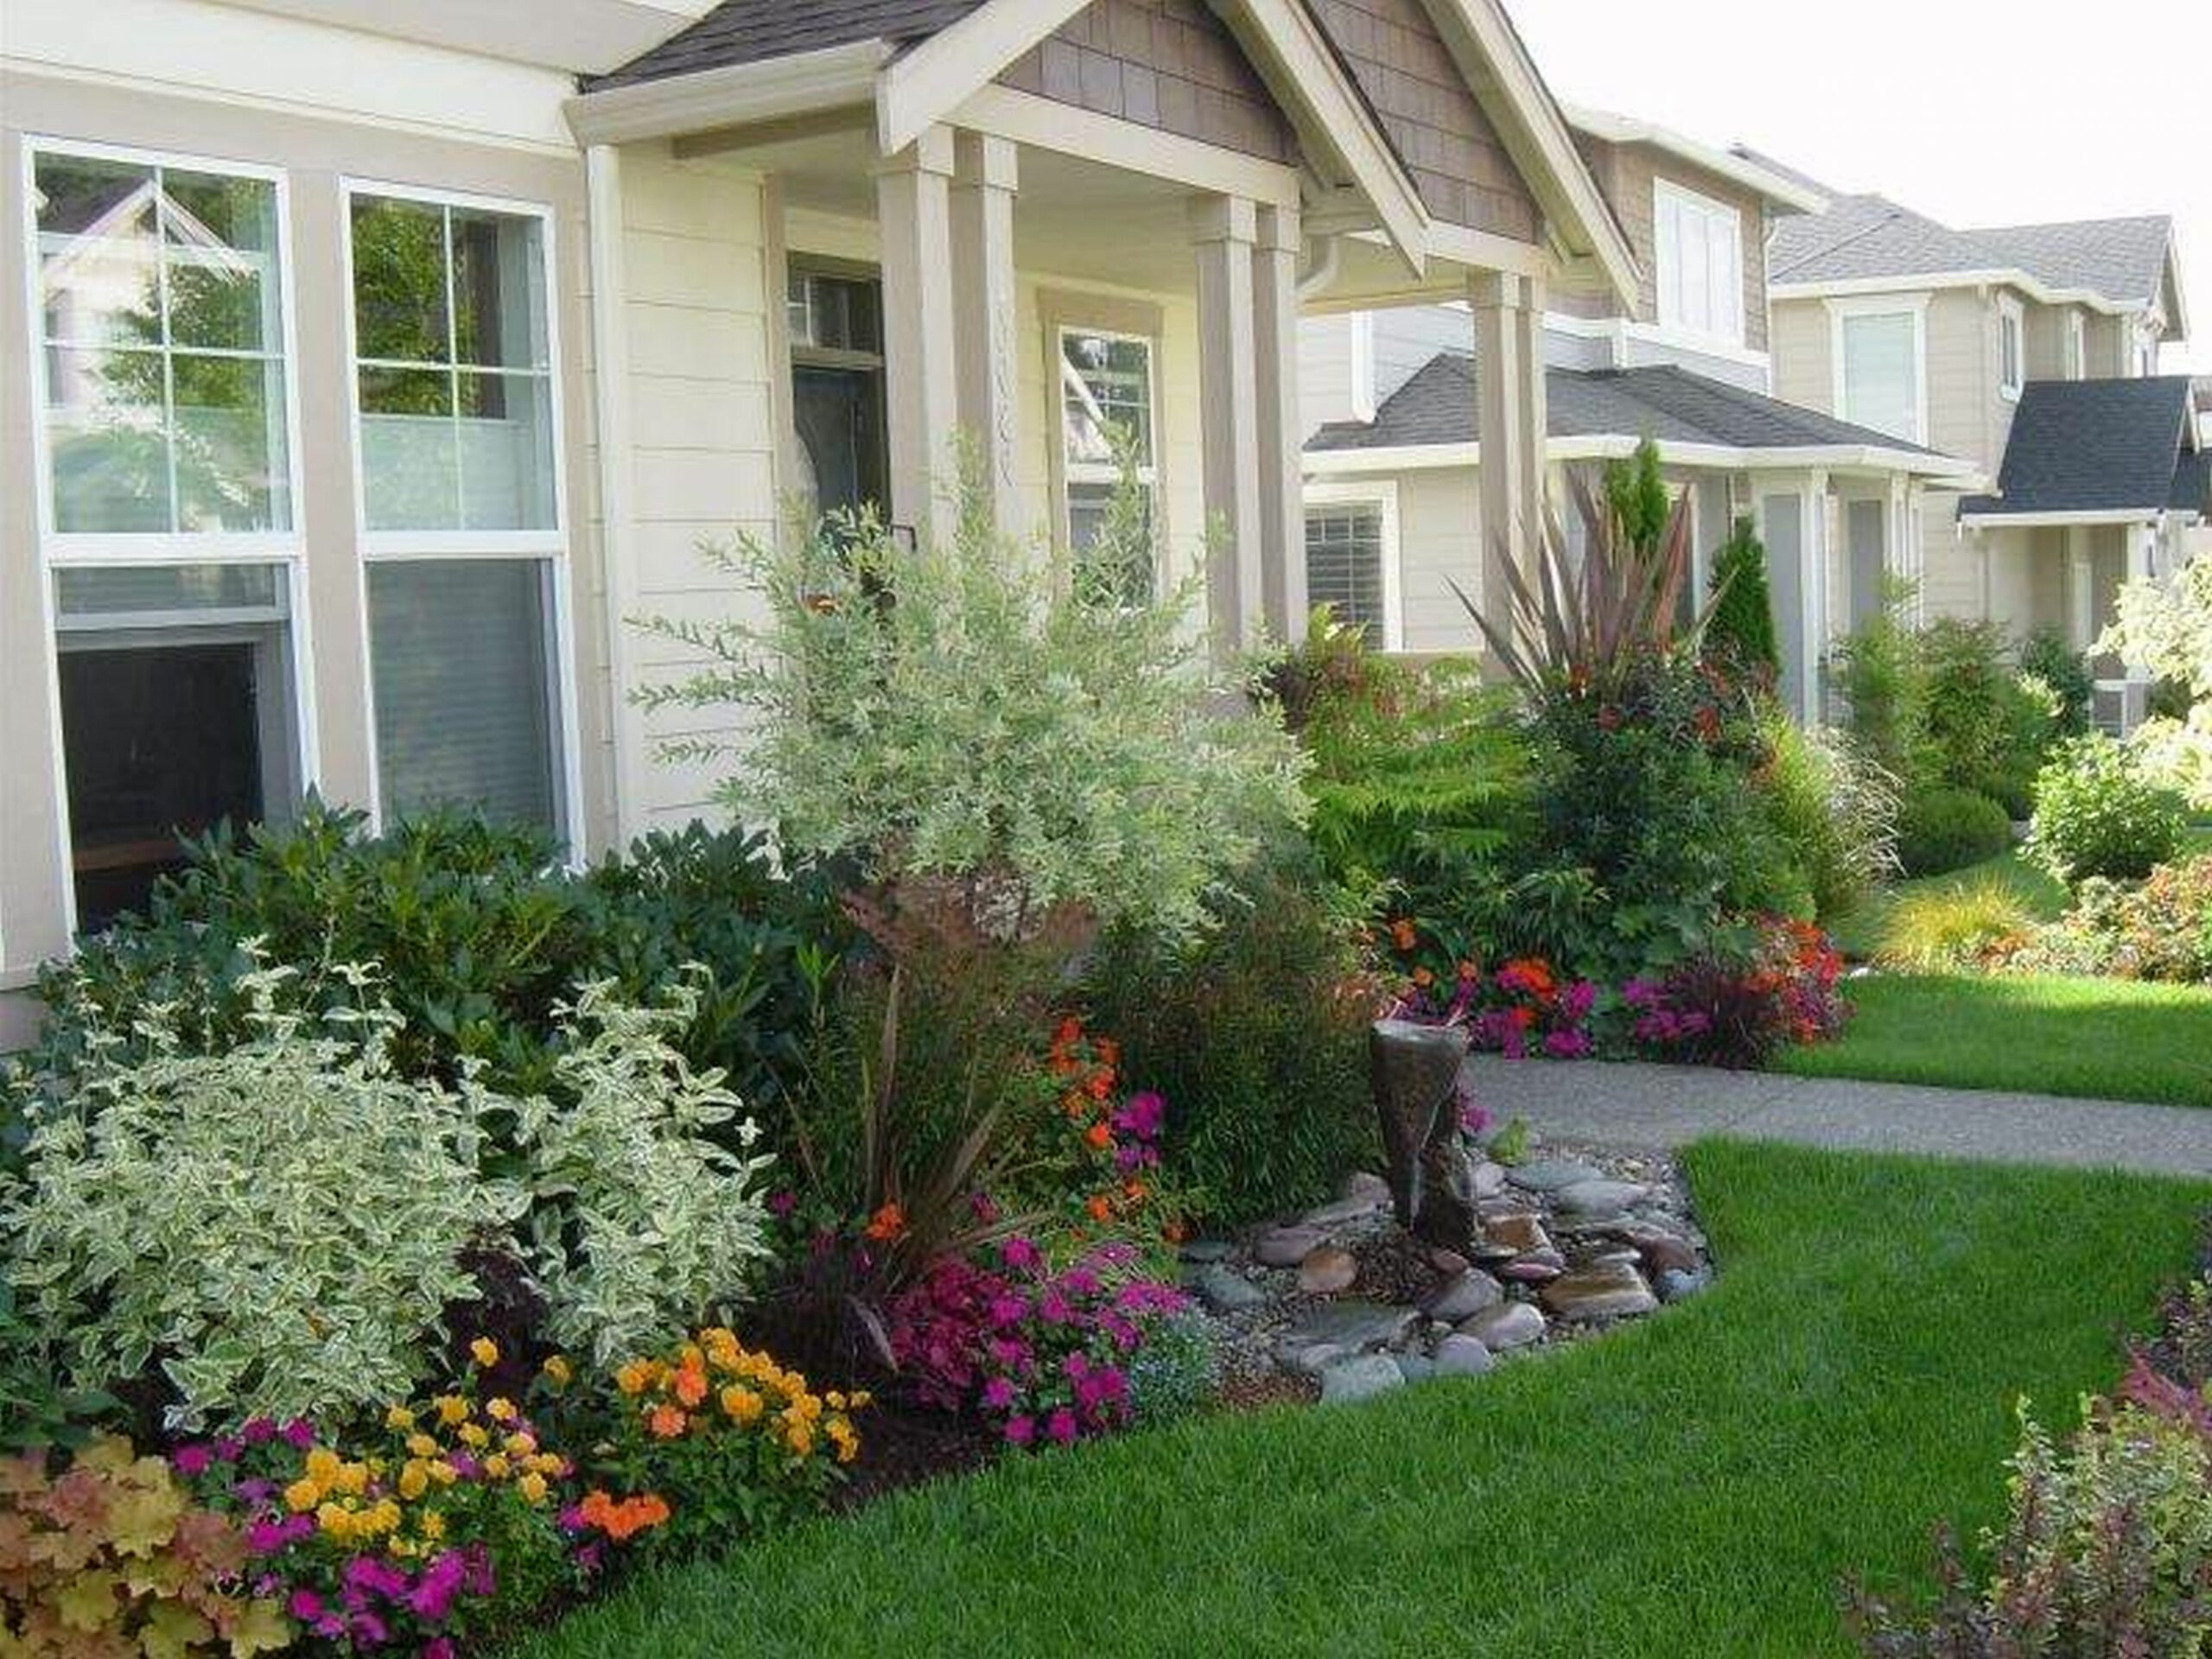 Garden Ideas For The Front Of The House | Garden front of house ..